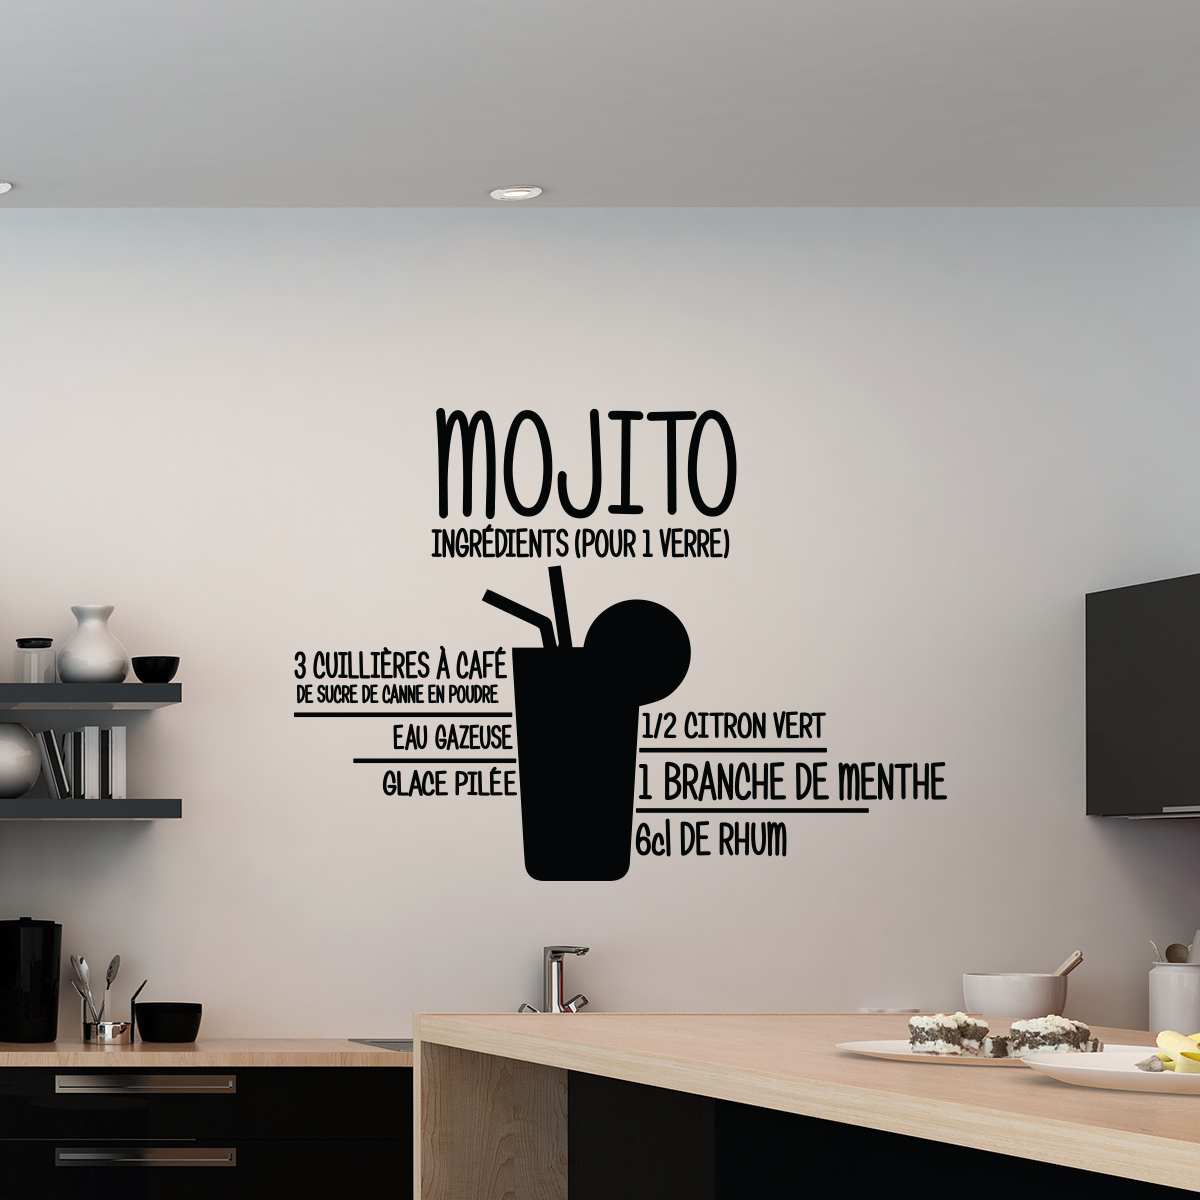 Meubles Deco Sticker Mojito - Stickers Cuisine | Ambiance-sticker.com